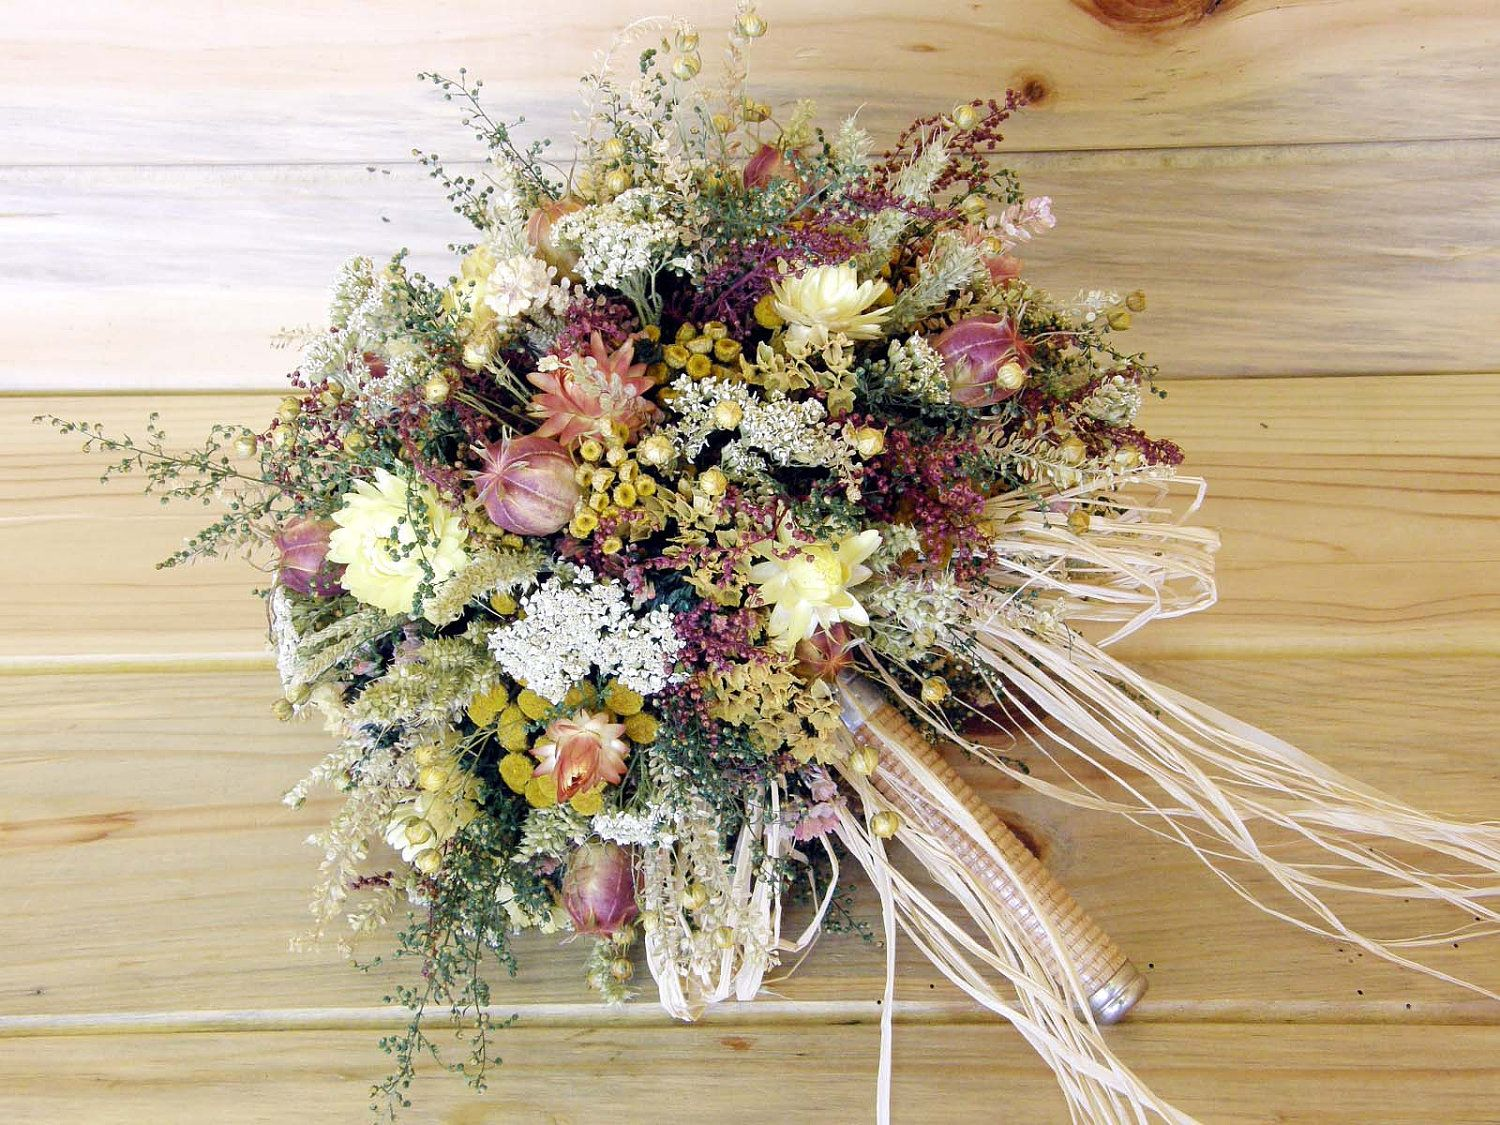 Country dried flower bridal bouquet something old something new country dried flower bridal bouquet something old something new 4995 via etsy izmirmasajfo